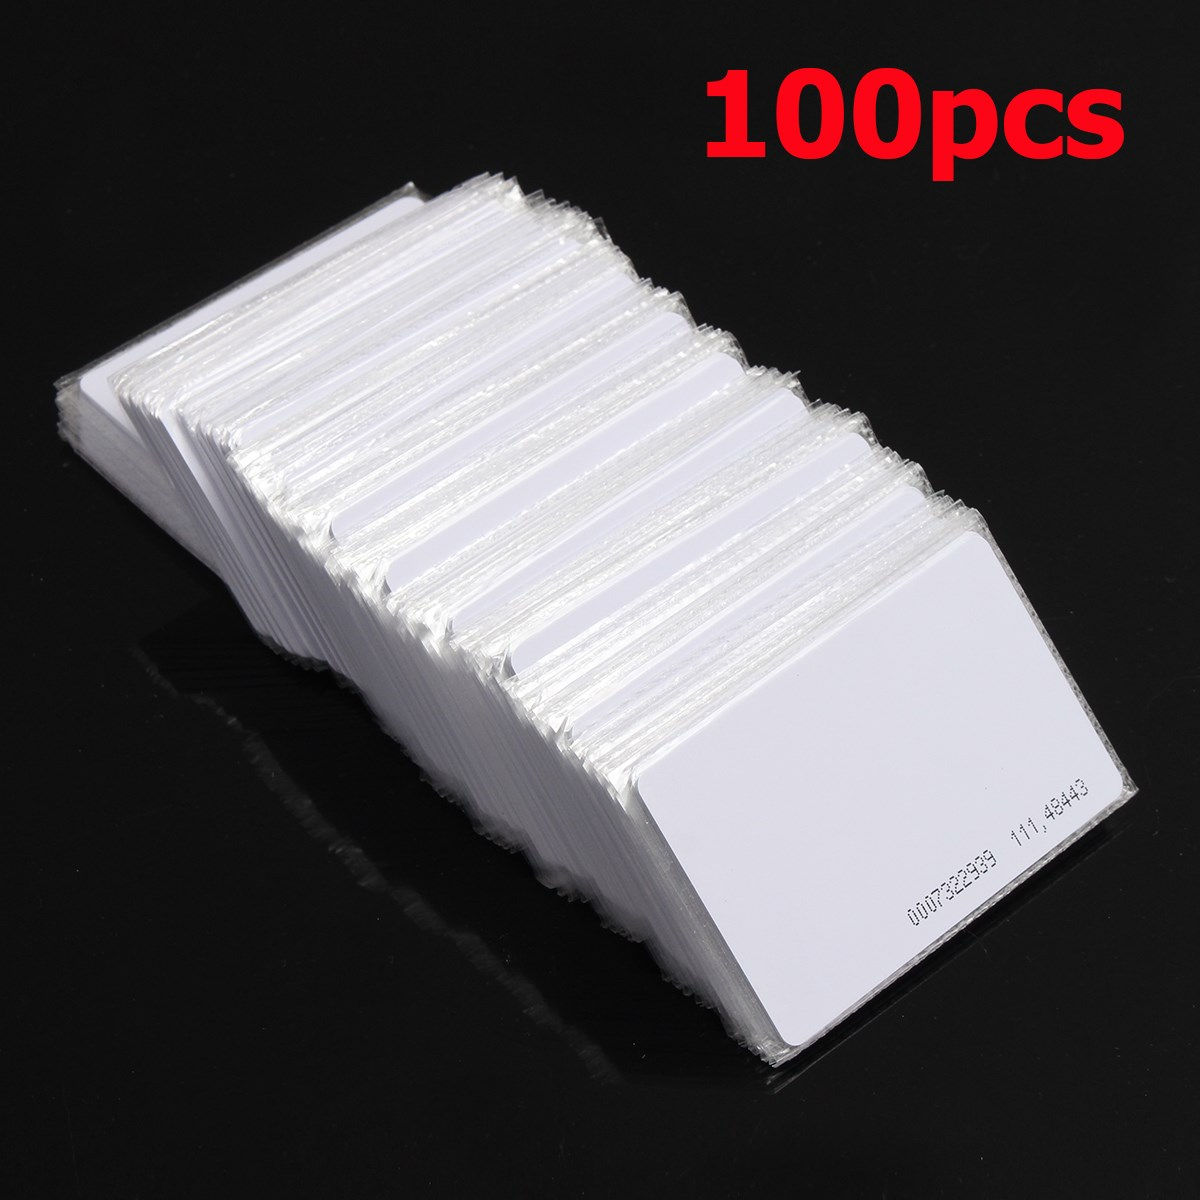 125khz em4100 door entry access blank white proximity rfid clamshell thick card thickness 1 9mm pack of 10 100pcs RFID 125KHz Proximity Door Control Entry Access EM card-0.9mm- card